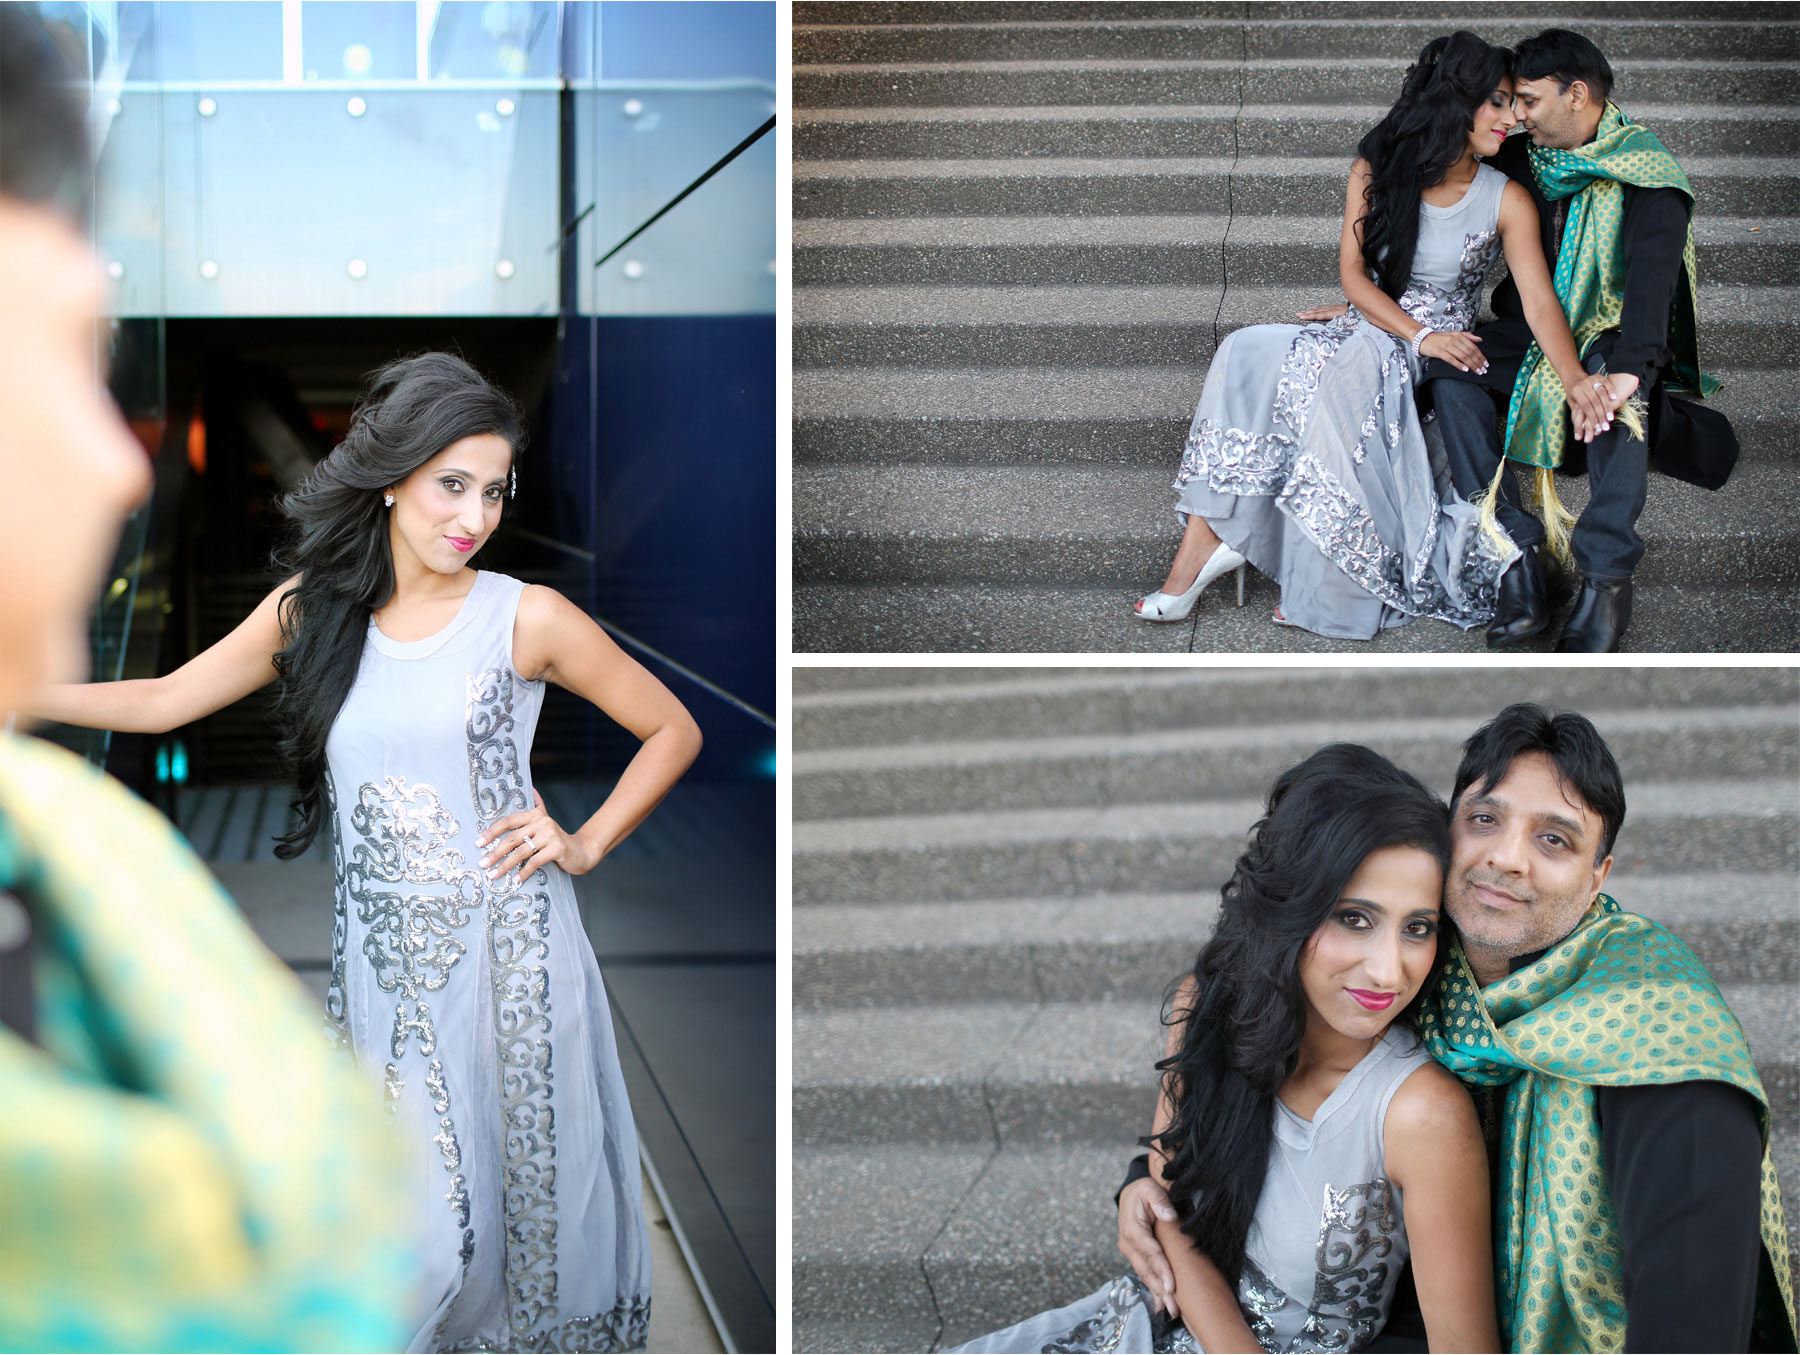 12-Minneapolis-Minnesota-Wedding-Photographer-by-Andrew-Vick-Photography-Summber-Engagement-Bride-Groom-Guthrie-Theater-Embrace-Tradional-Indian-Clothing-Natasha-and-Sohail.jpg